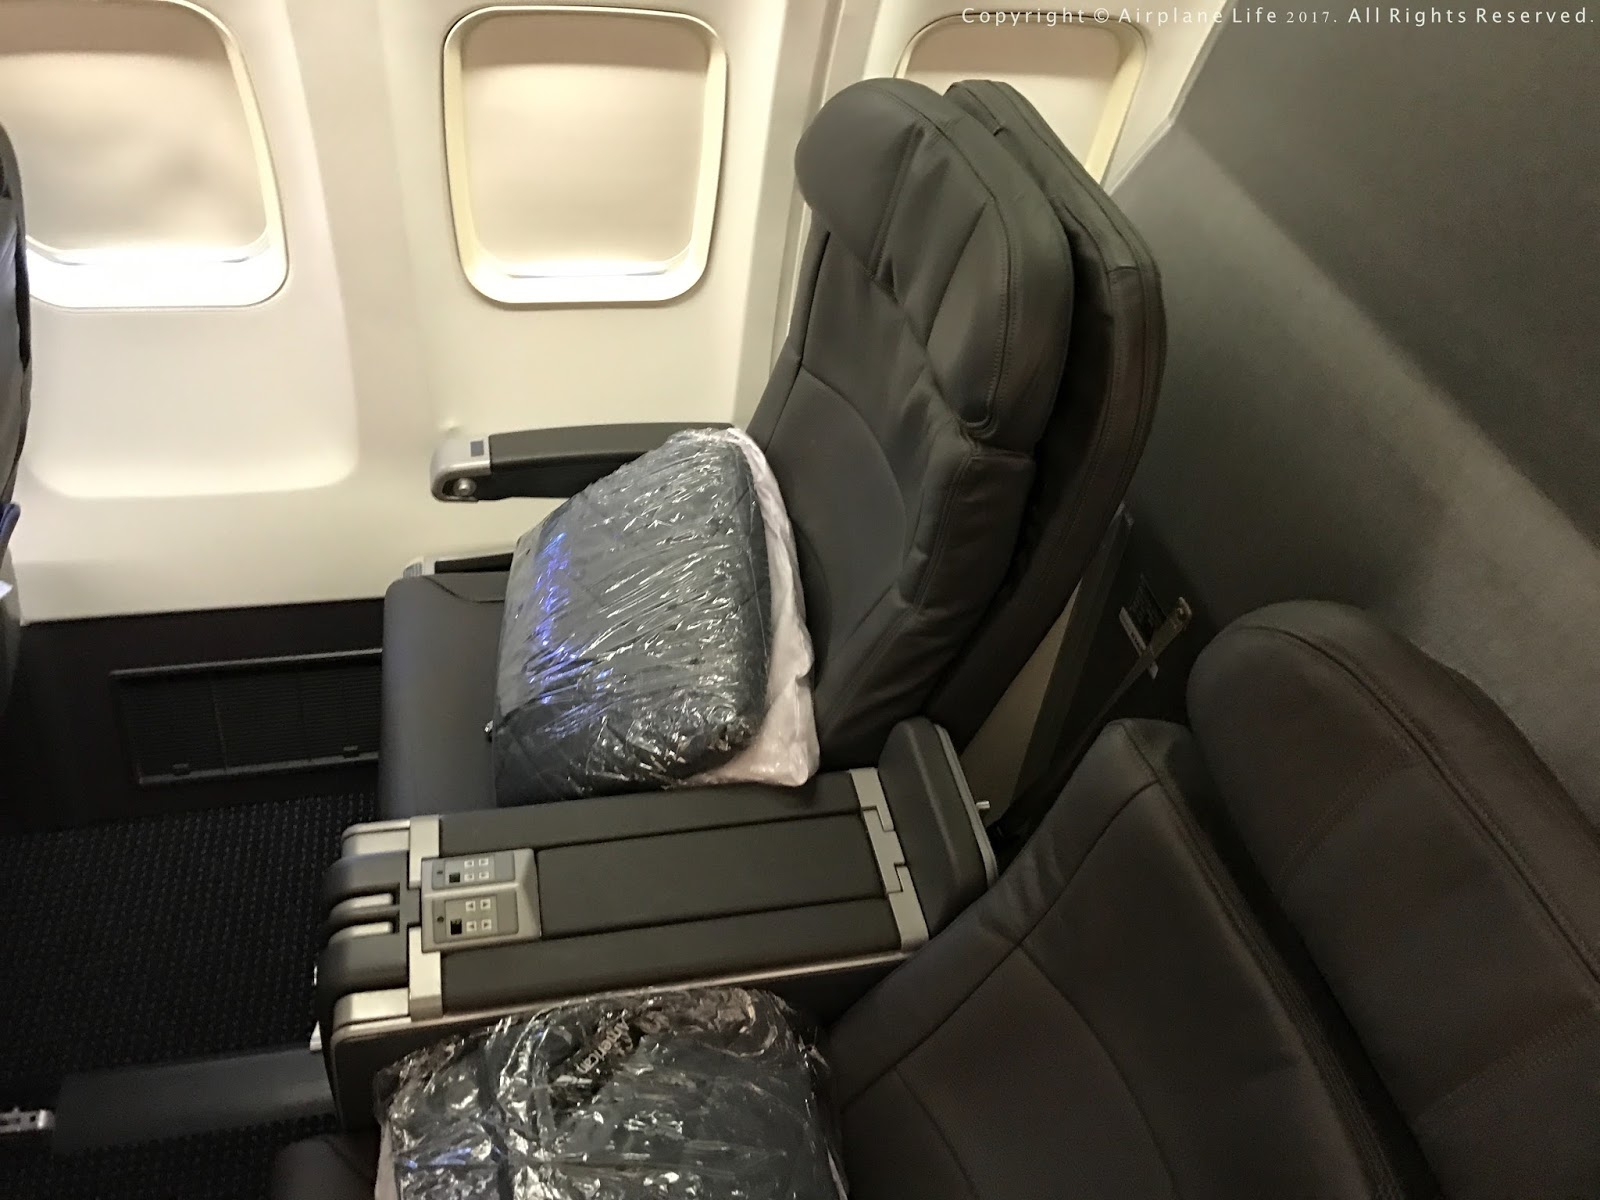 Airplane Life American Airlines First Class Hawaii